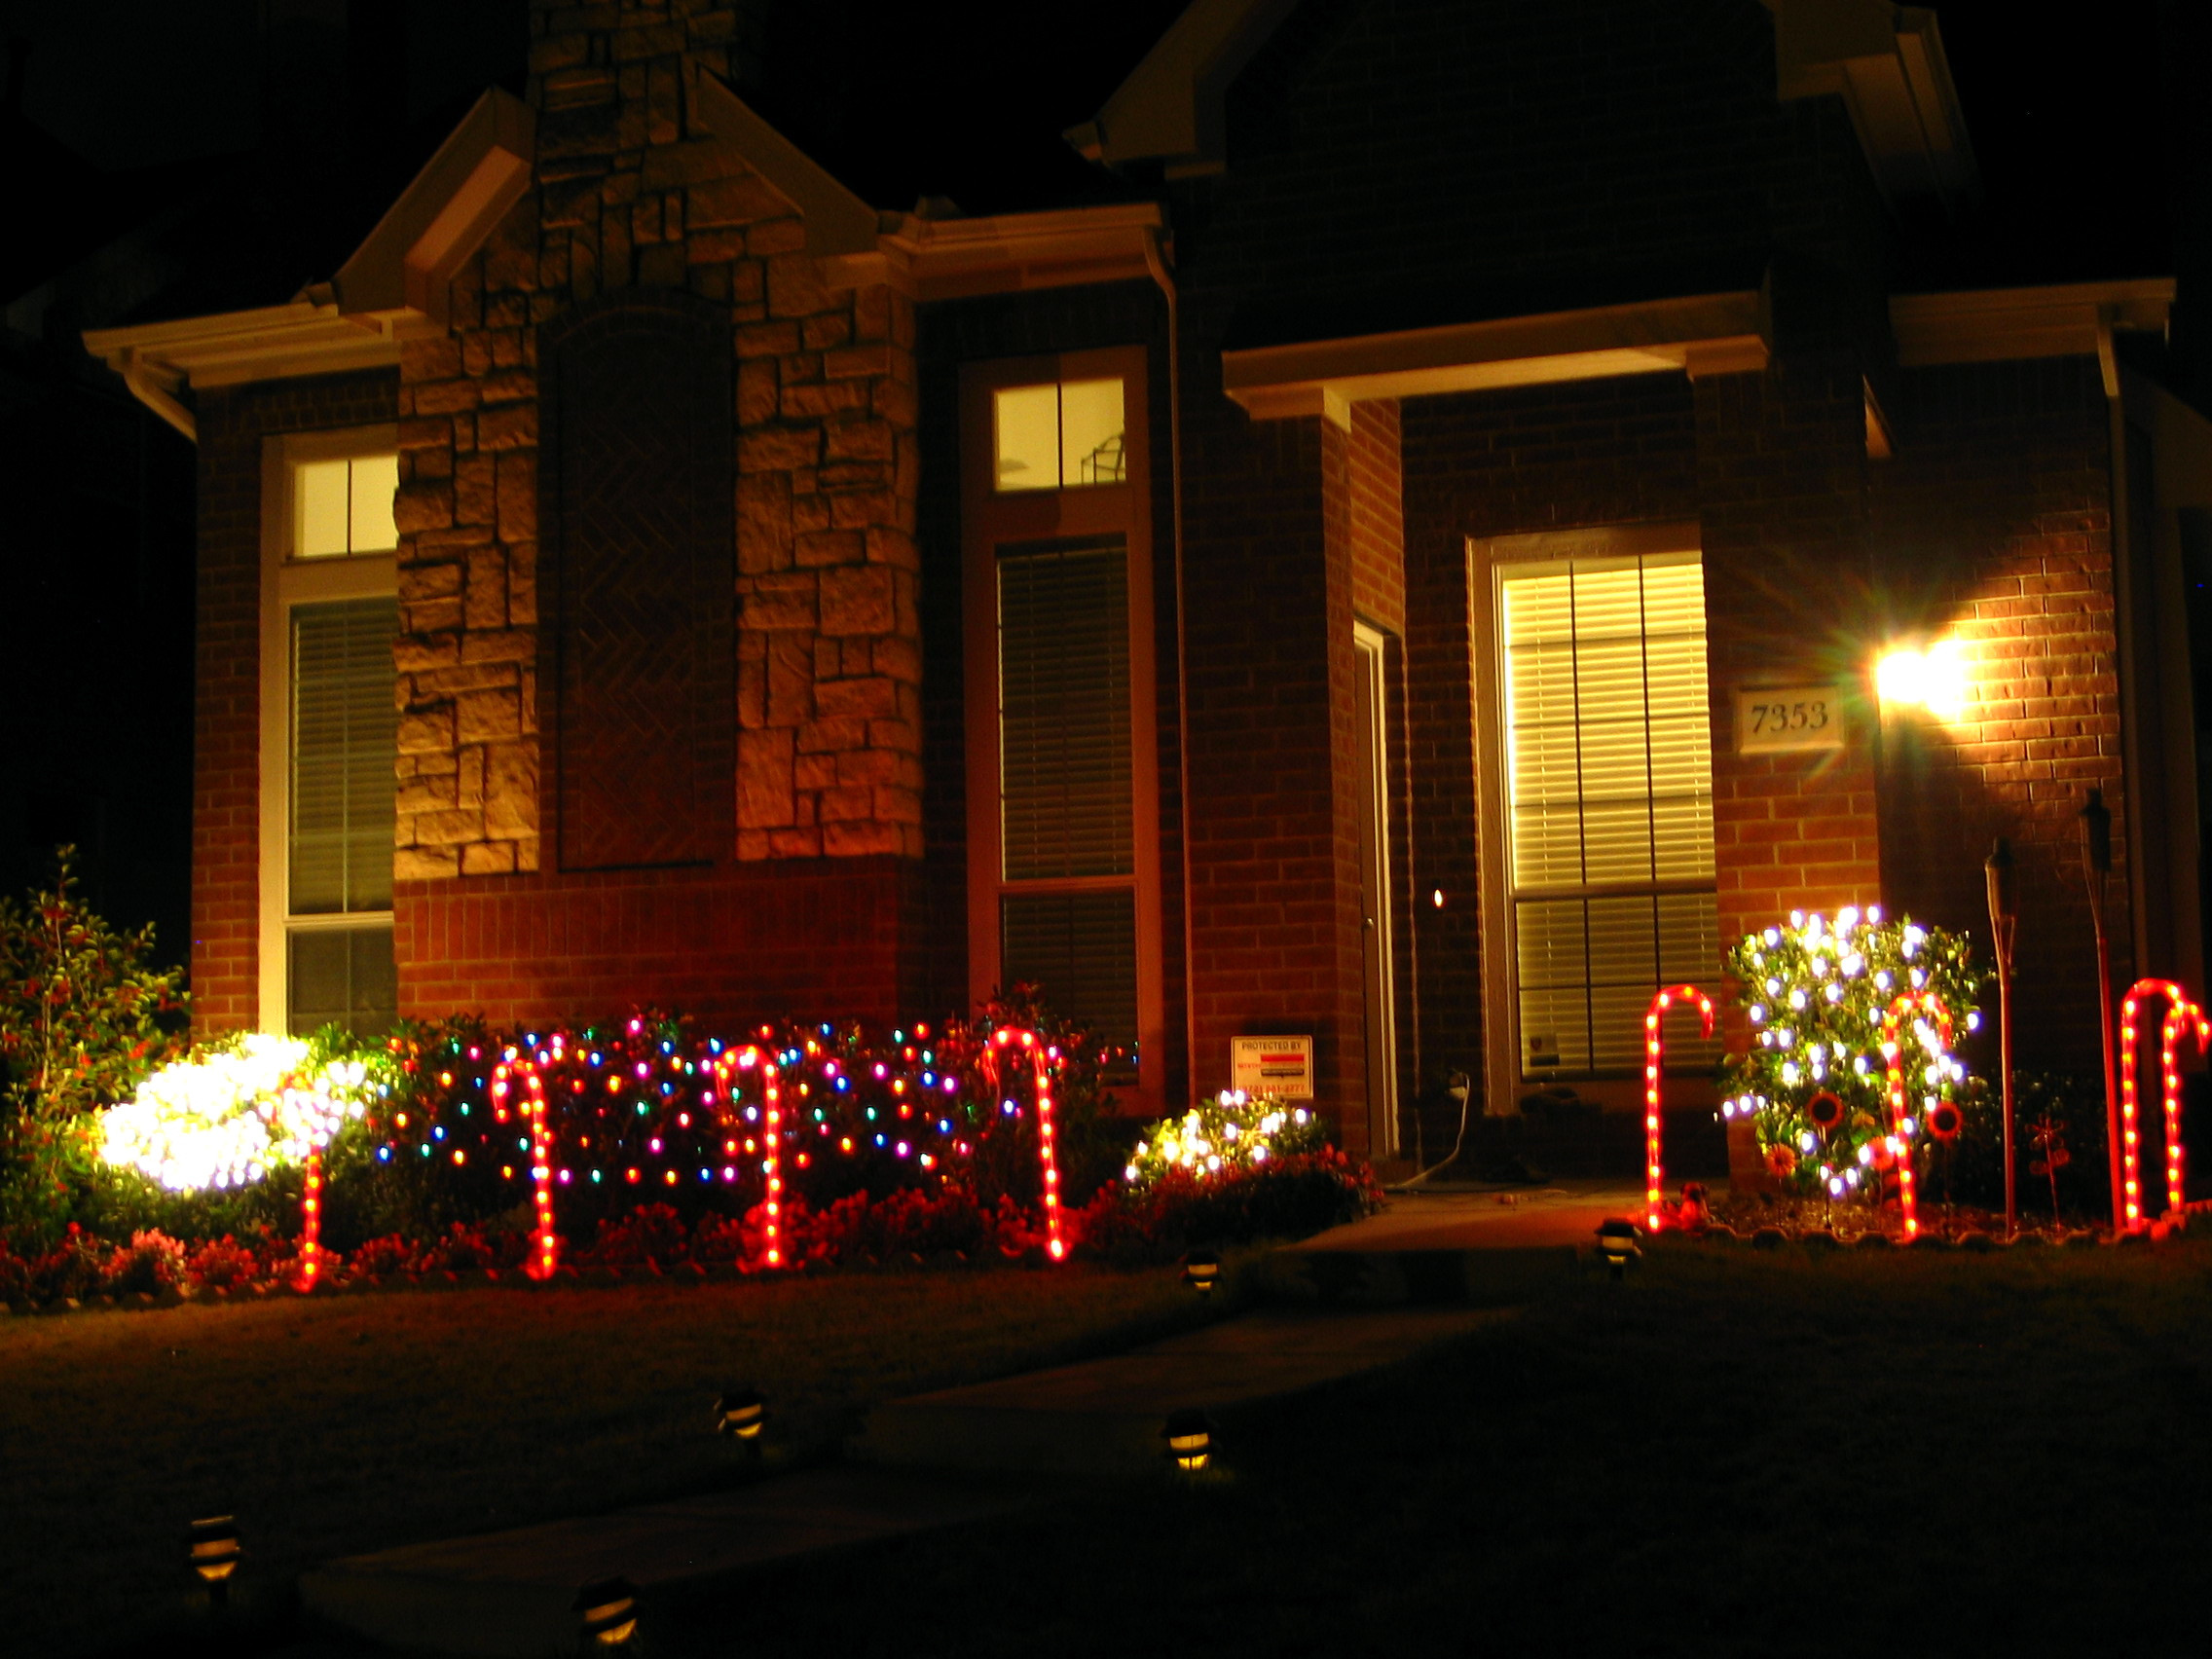 Outdoor Christmas Decorations Clearance  Outdoor christmas decorations clearance Christmas 2015